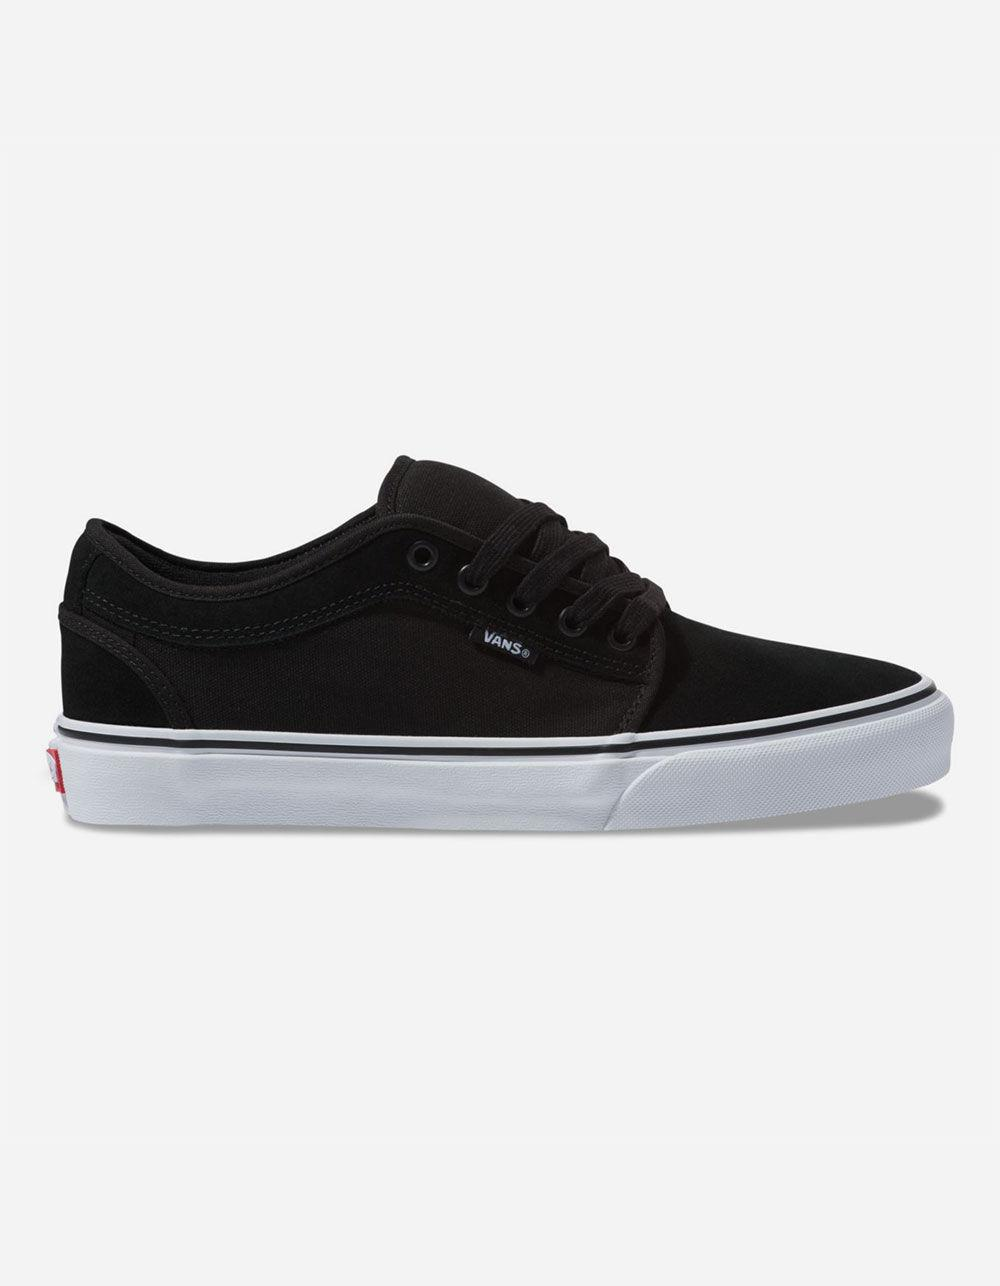 ab573e37602b Vans - Suede Chukka Low Black   True White Mens Shoes for Men - Lyst. View  fullscreen